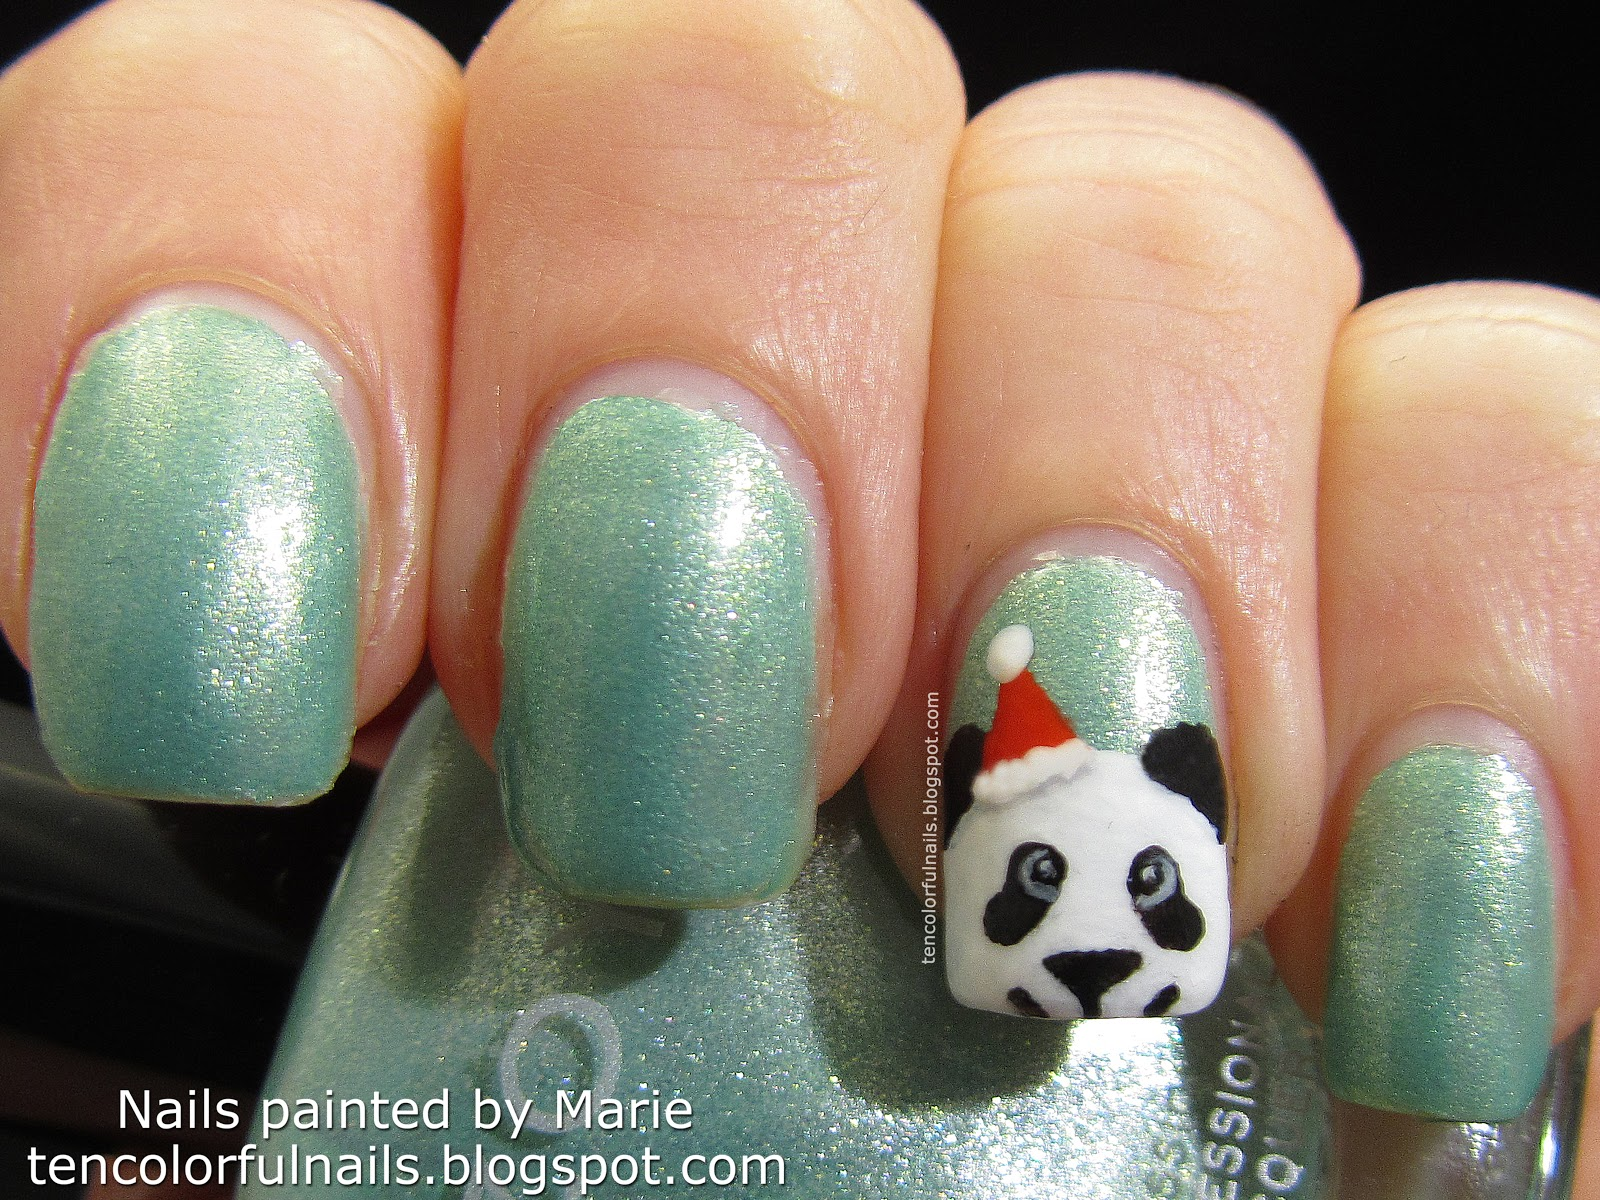 Ten colorful nails christmas panda nail art tutorial christmas panda nail art tutorial prinsesfo Image collections